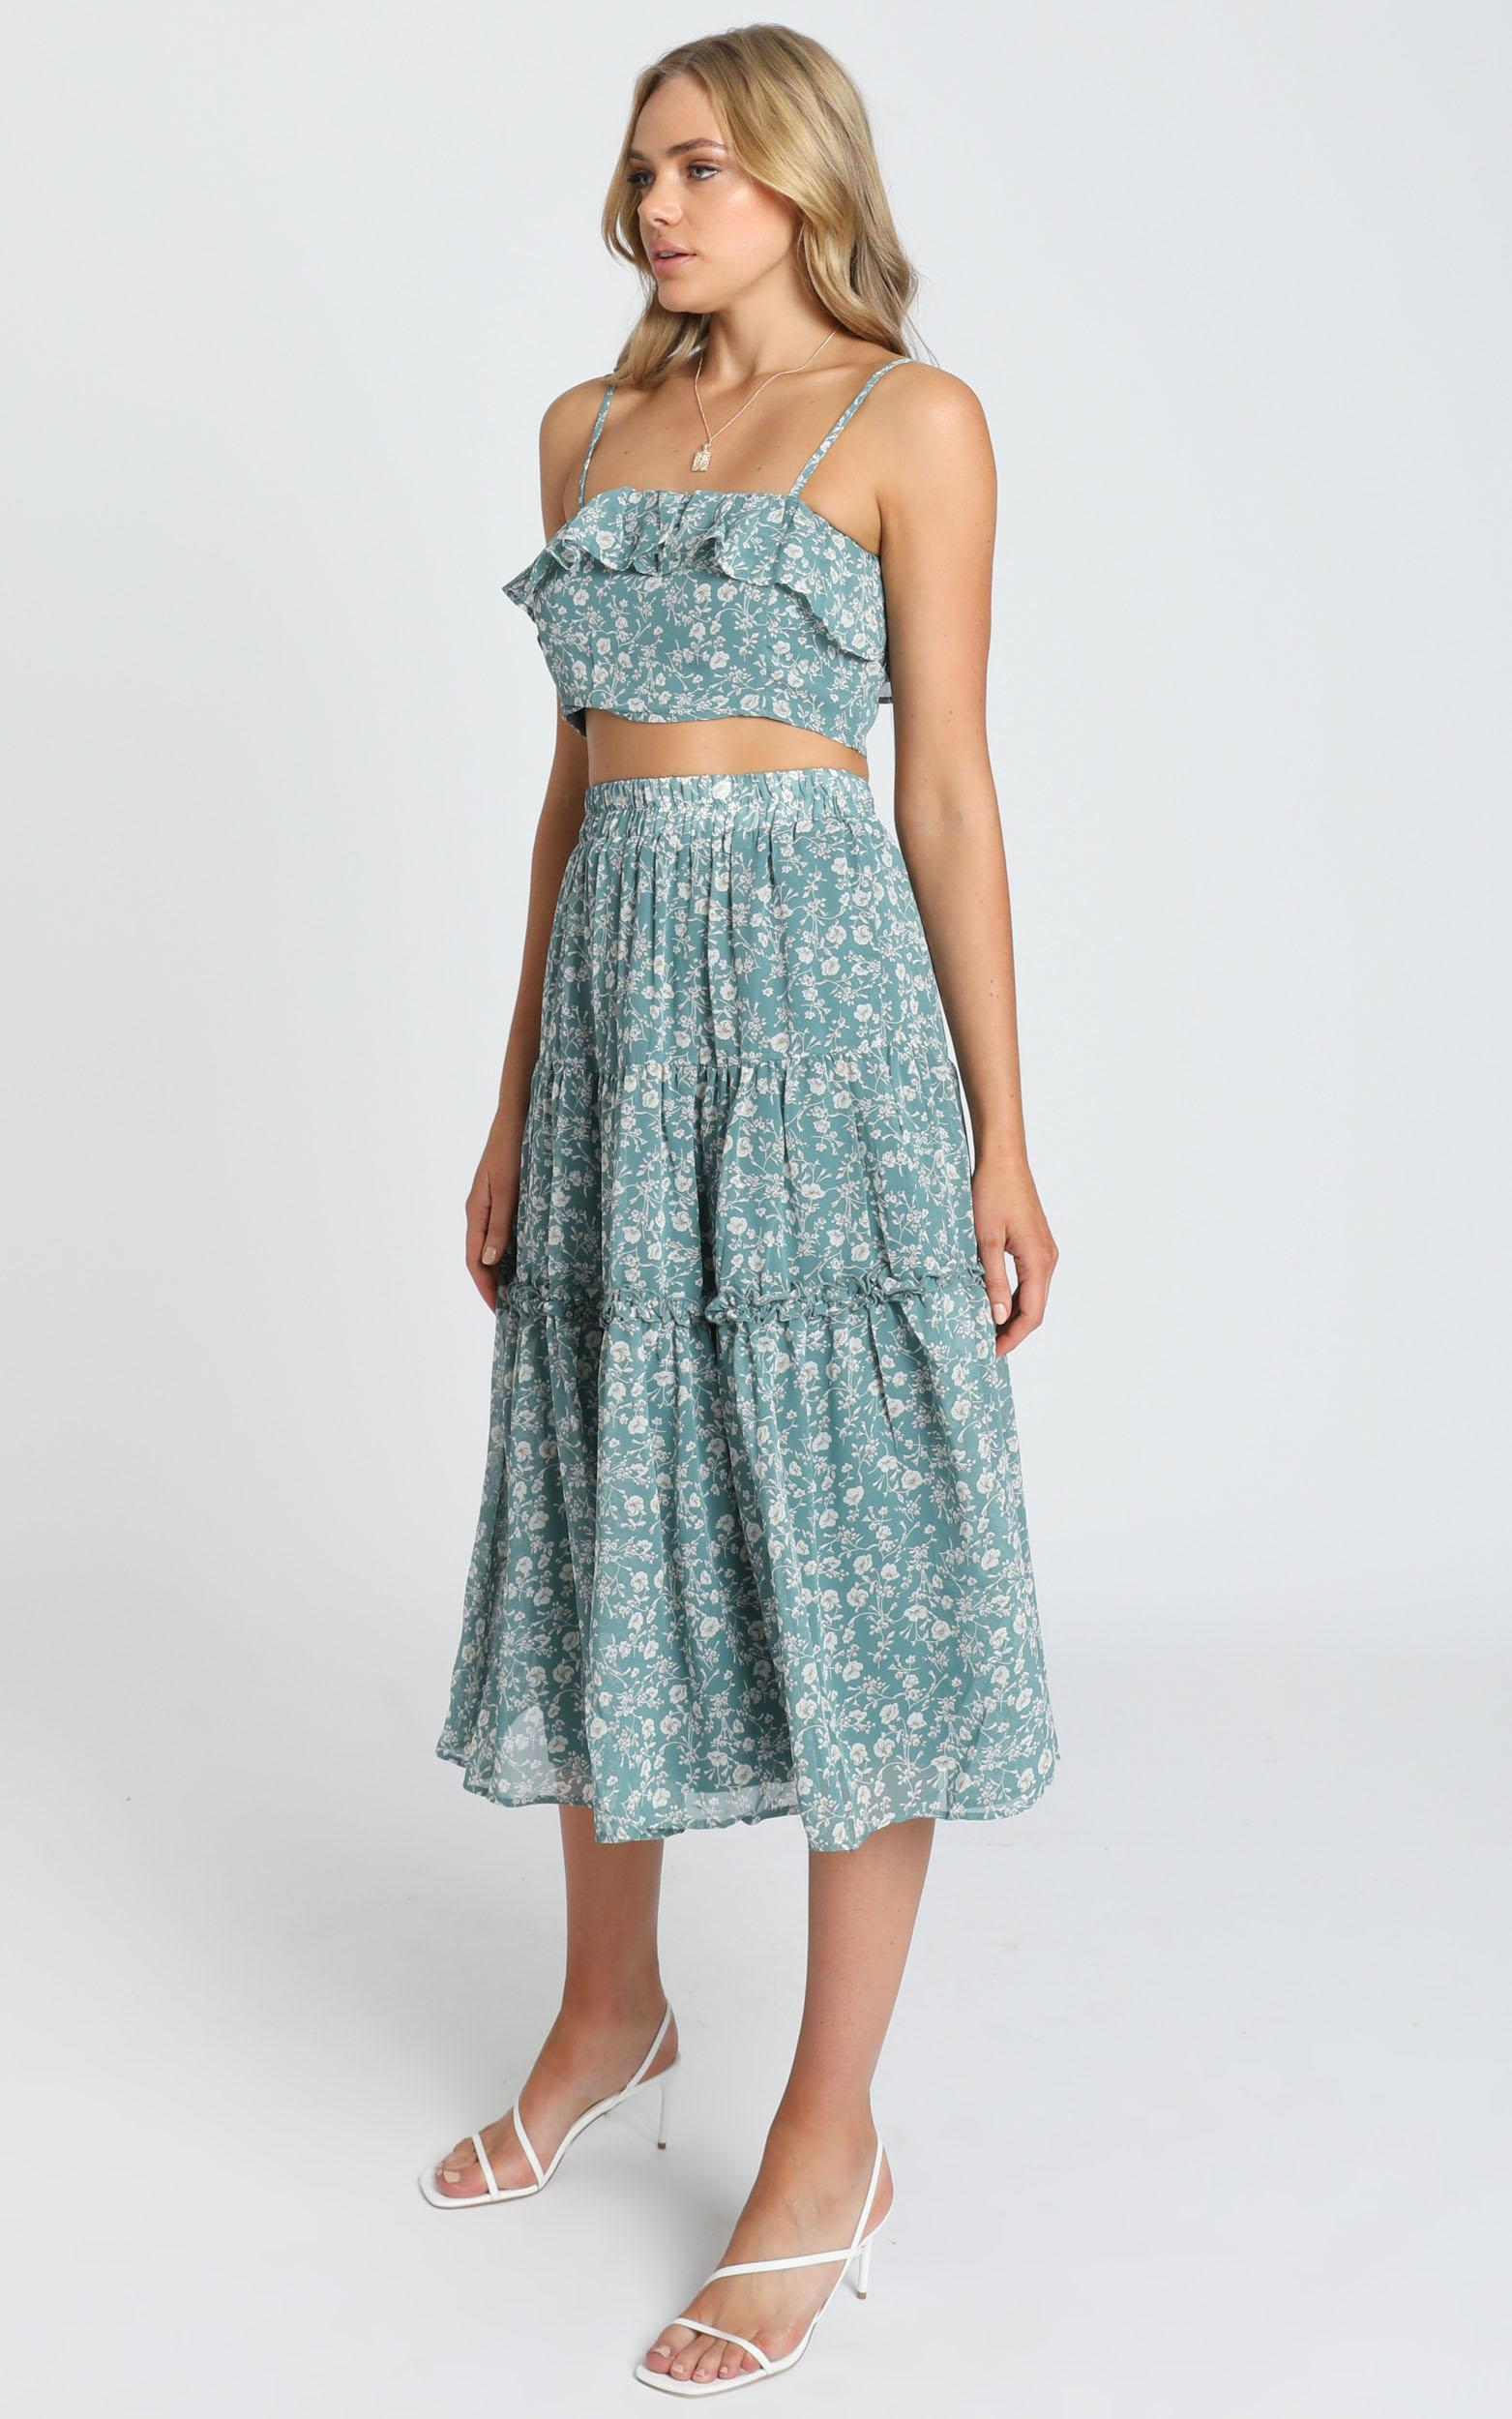 Cosmic Girl Skirt in teal floral - 8 (S), Green, hi-res image number null